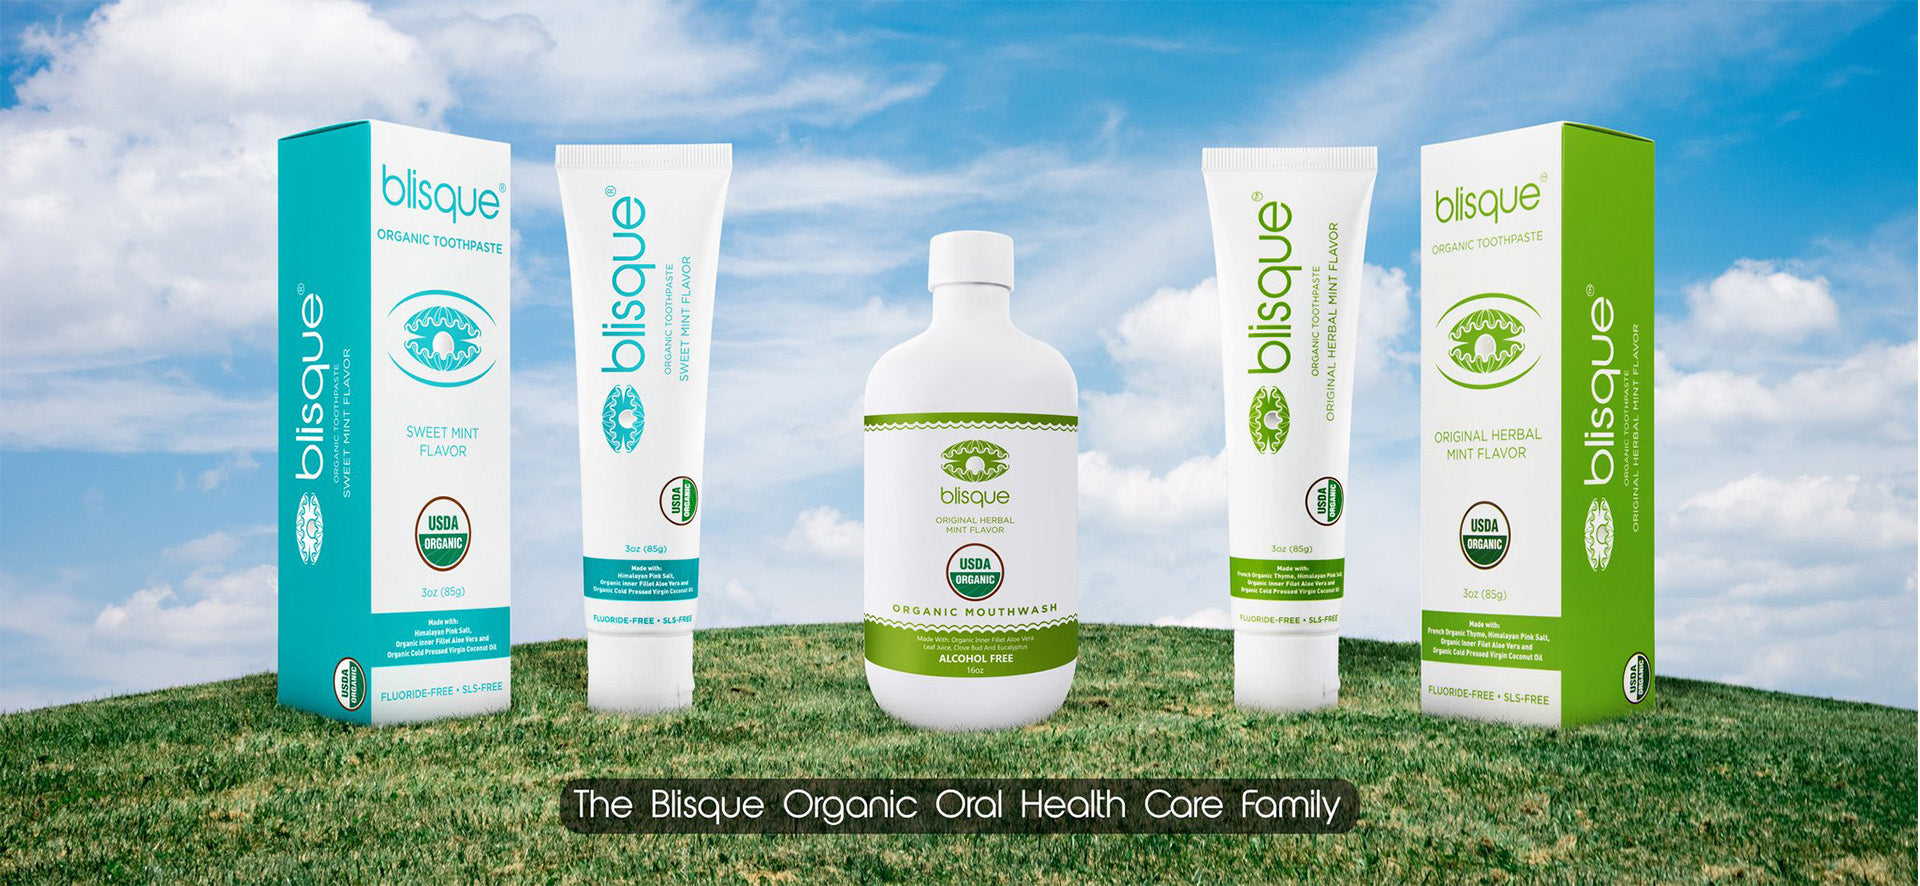 Organic Oral Health Care Family